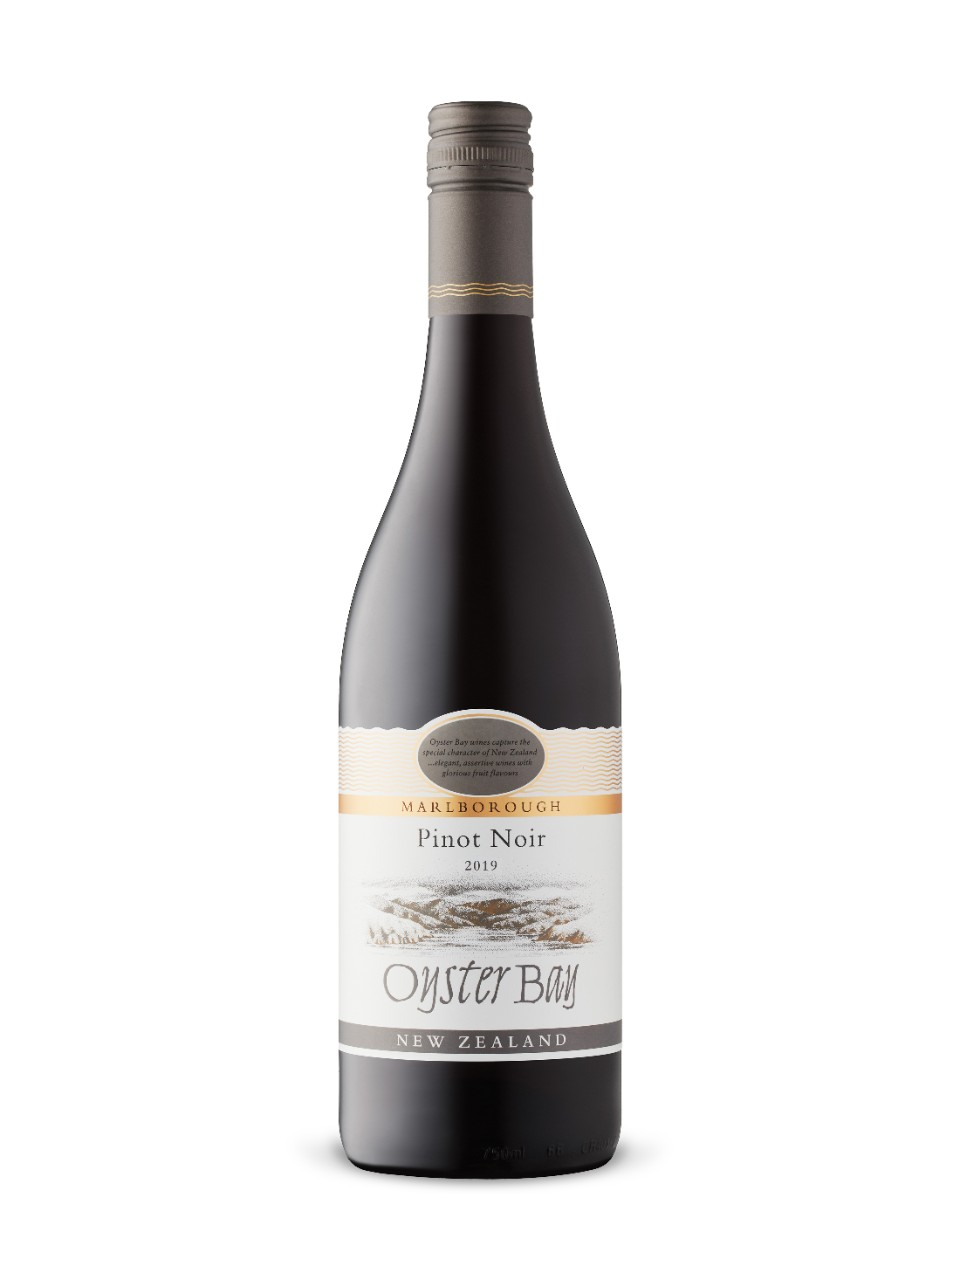 Oyster Bay Pinot Noir 2018 from LCBO